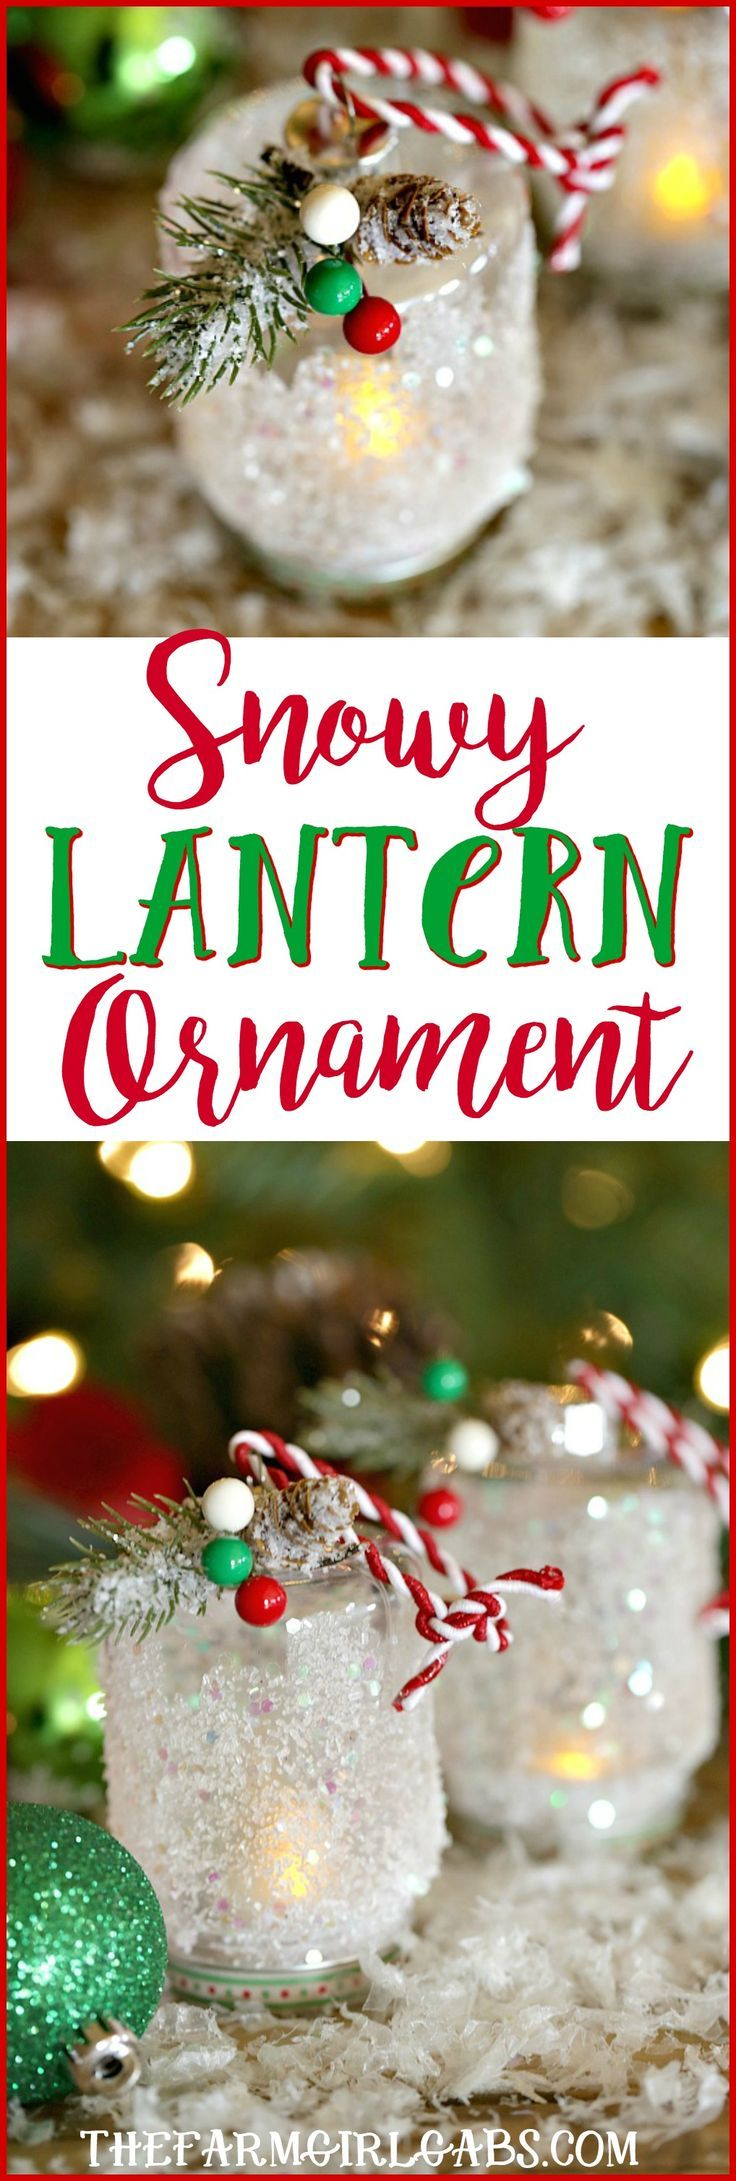 This easy DIY Snowy Lantern Ornament will shine brightly on your Christmas tree. #craft #Christmas #Ornament #DIY #ChristmasCraft #ChristmasOrnament